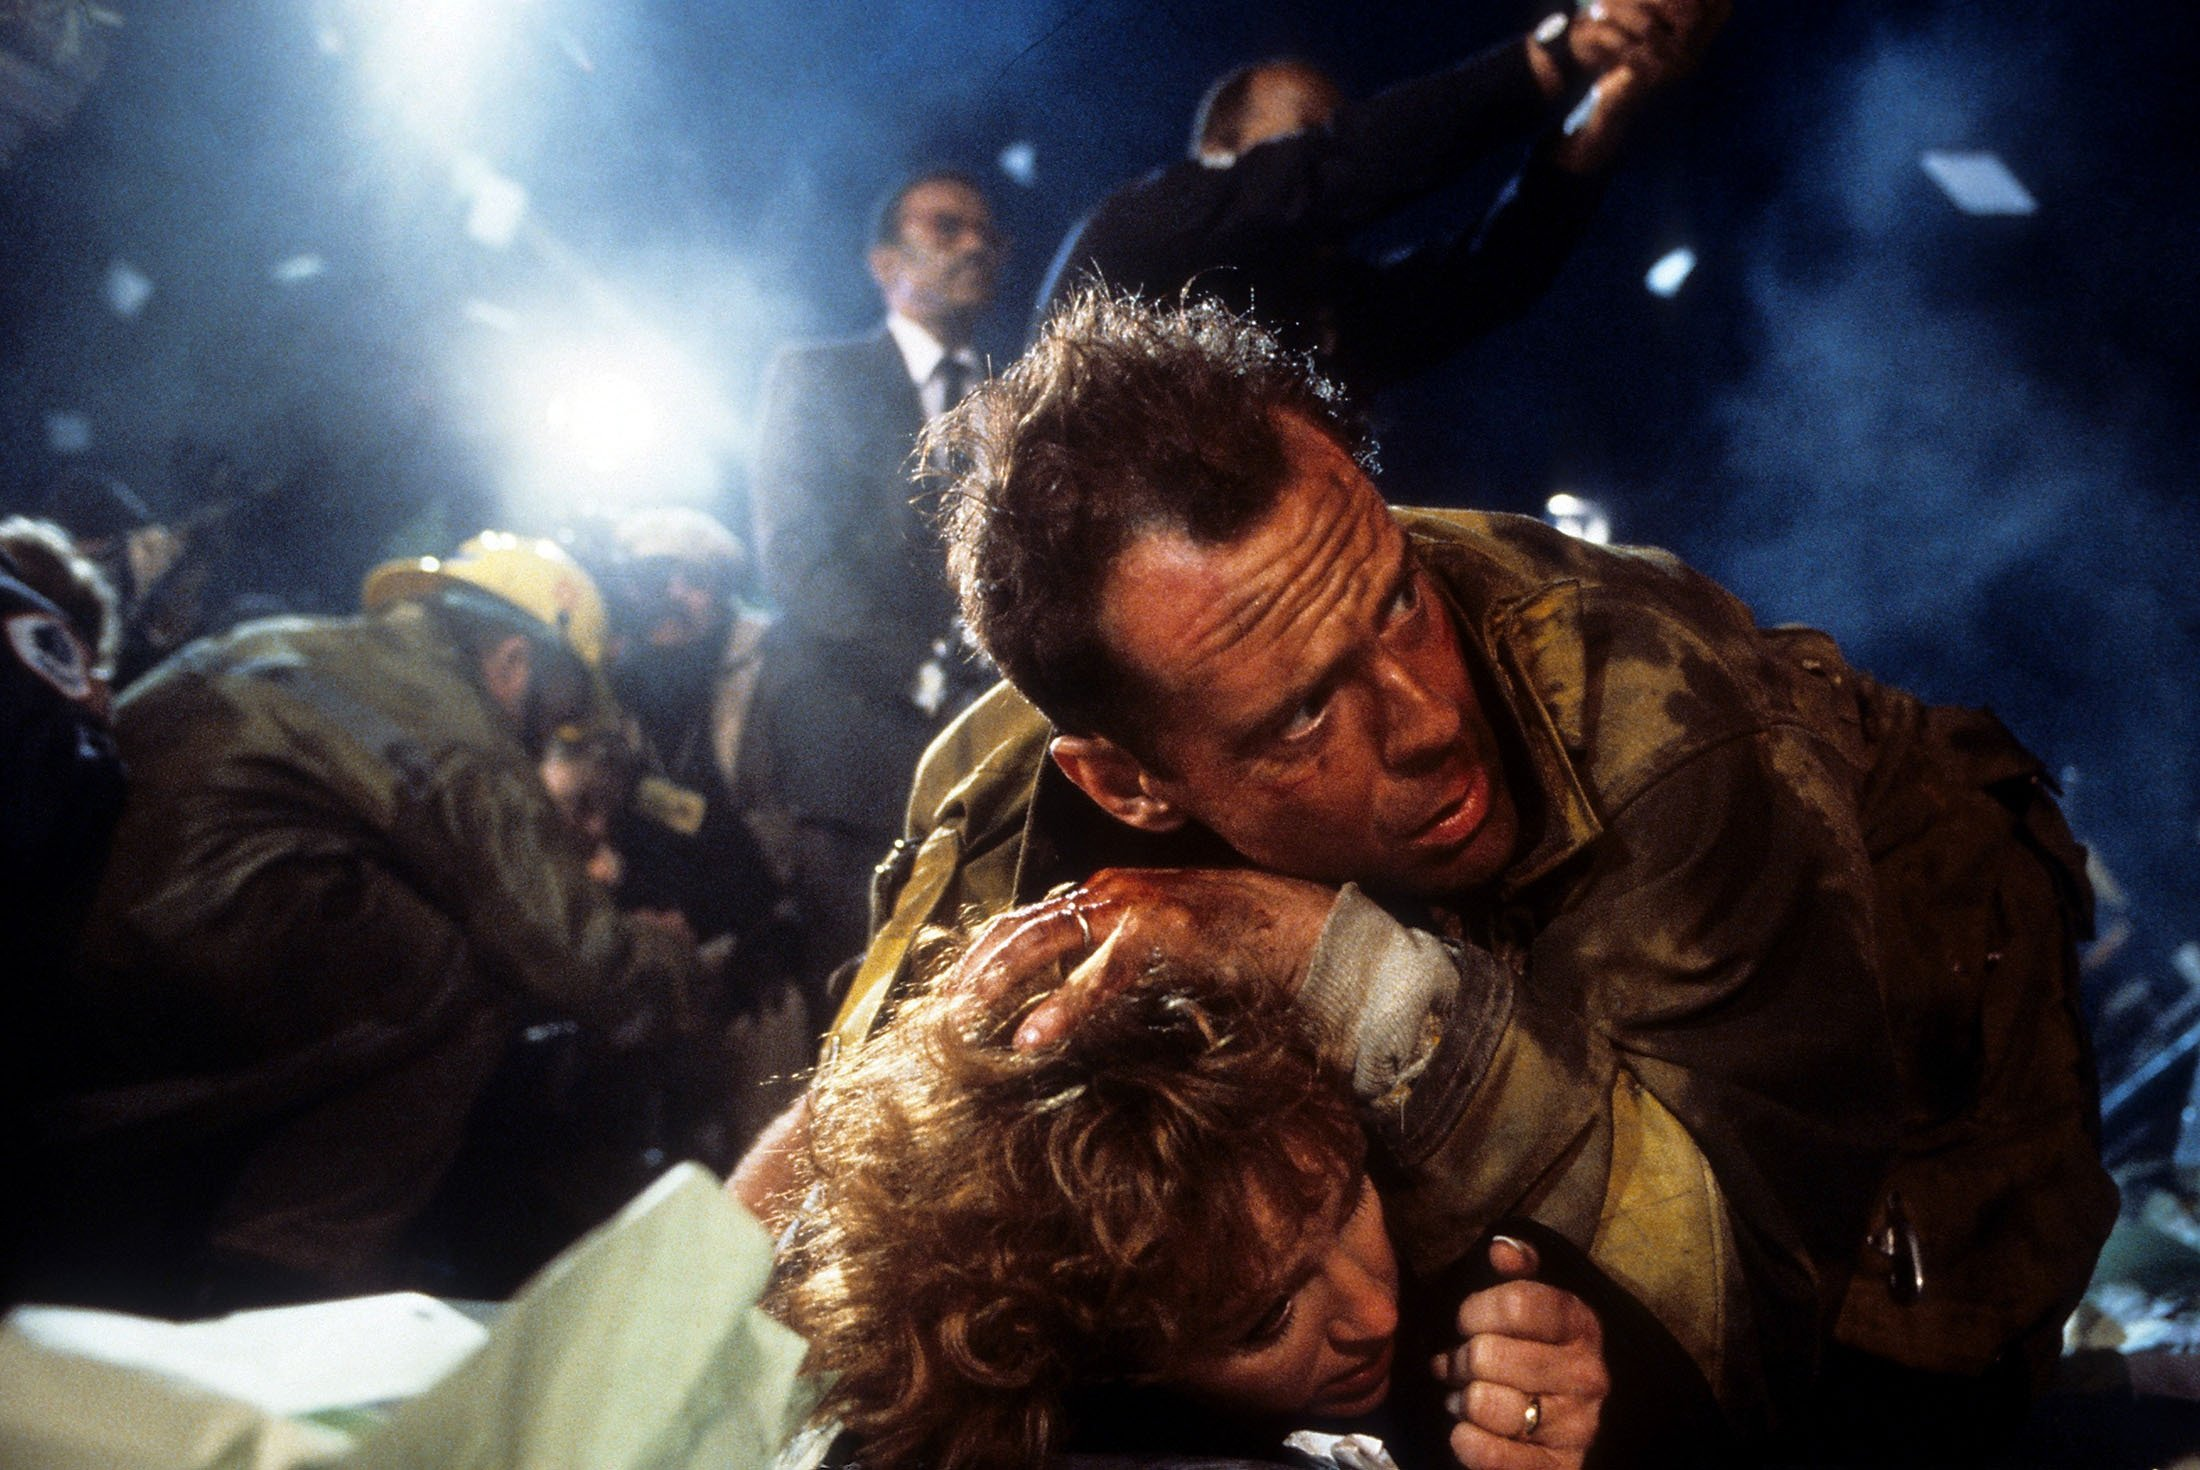 """Bruce Willis covers over Bonnie Bedelia, who playhusband andwife, in a scene from the film""""Die Hard"""", released in 1988. (Getty Images)"""